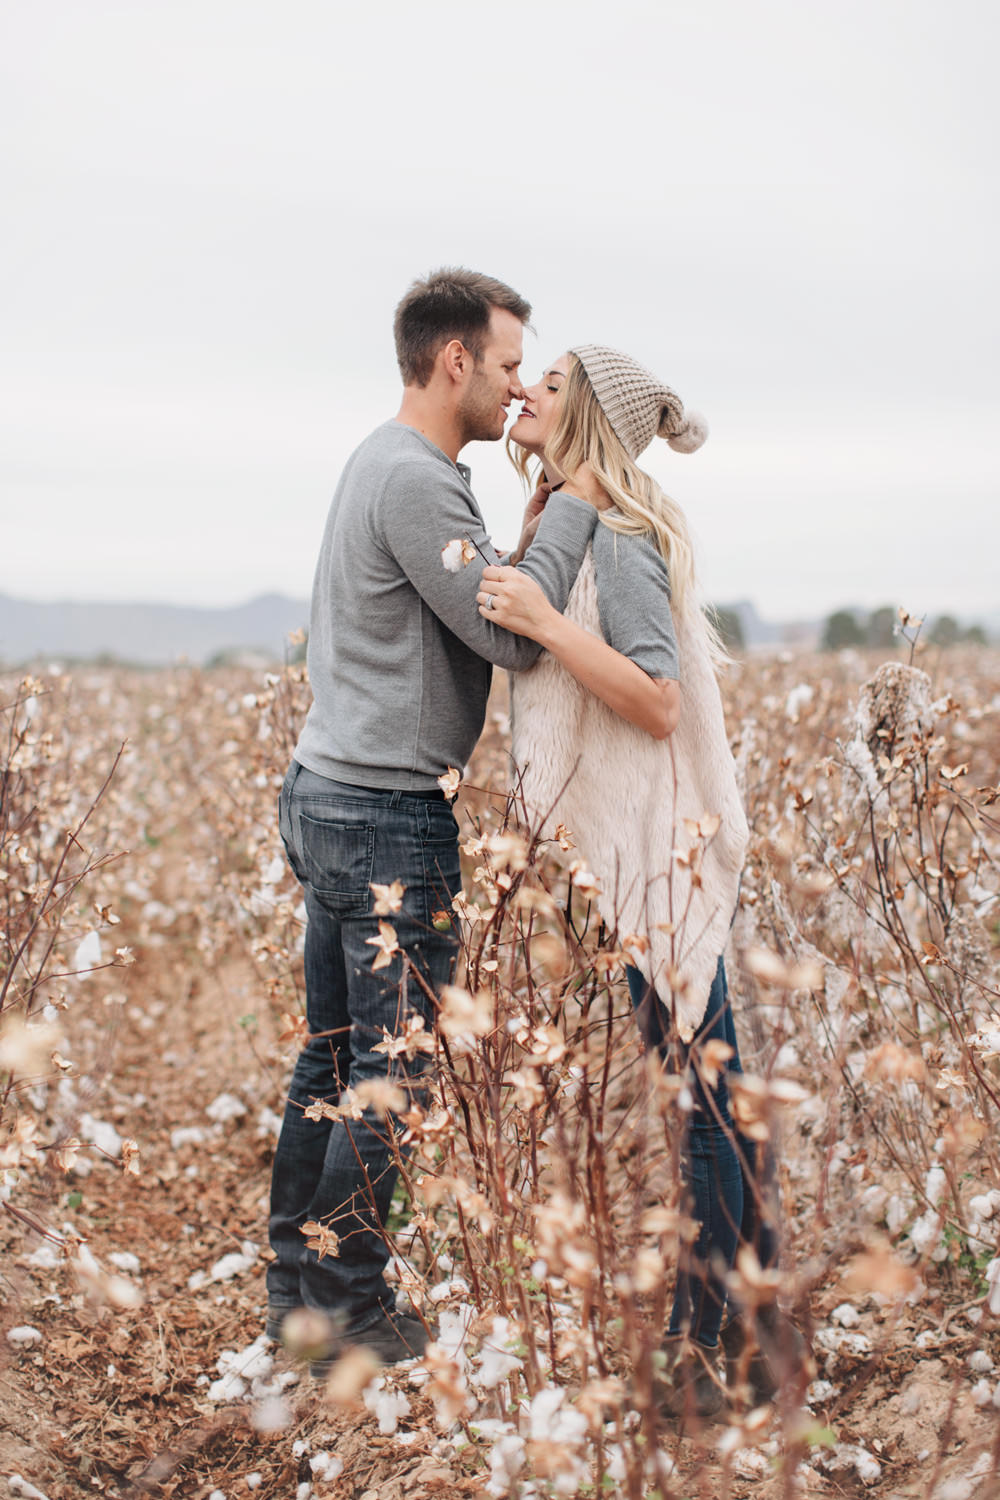 Caitlin Lindquist of the lifestyle blog Dash of Darling shares her fertility struggles and the highs and lows of IVF.